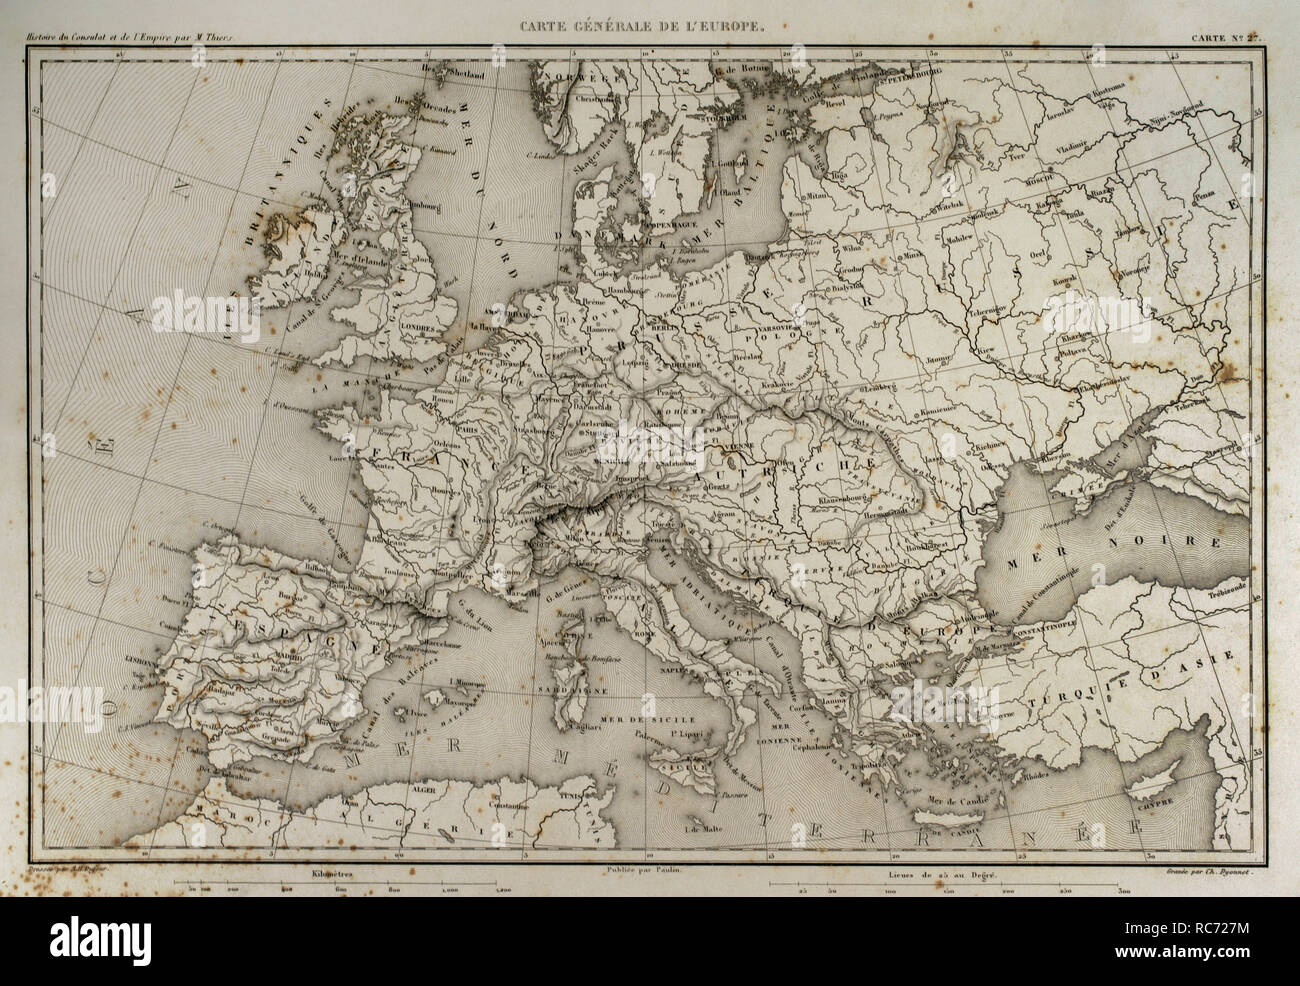 General map of Europe. Atlas de l'Histoire du Consulat et de l'Empire. History of the Consulate and the Empire of France under Napoleon by Marie Joseph Louis Adolphe Thiers (1797-1877). Drawings by Dufour, engravings by Dyonnet. Edited in Paris, 1864. - Stock Image